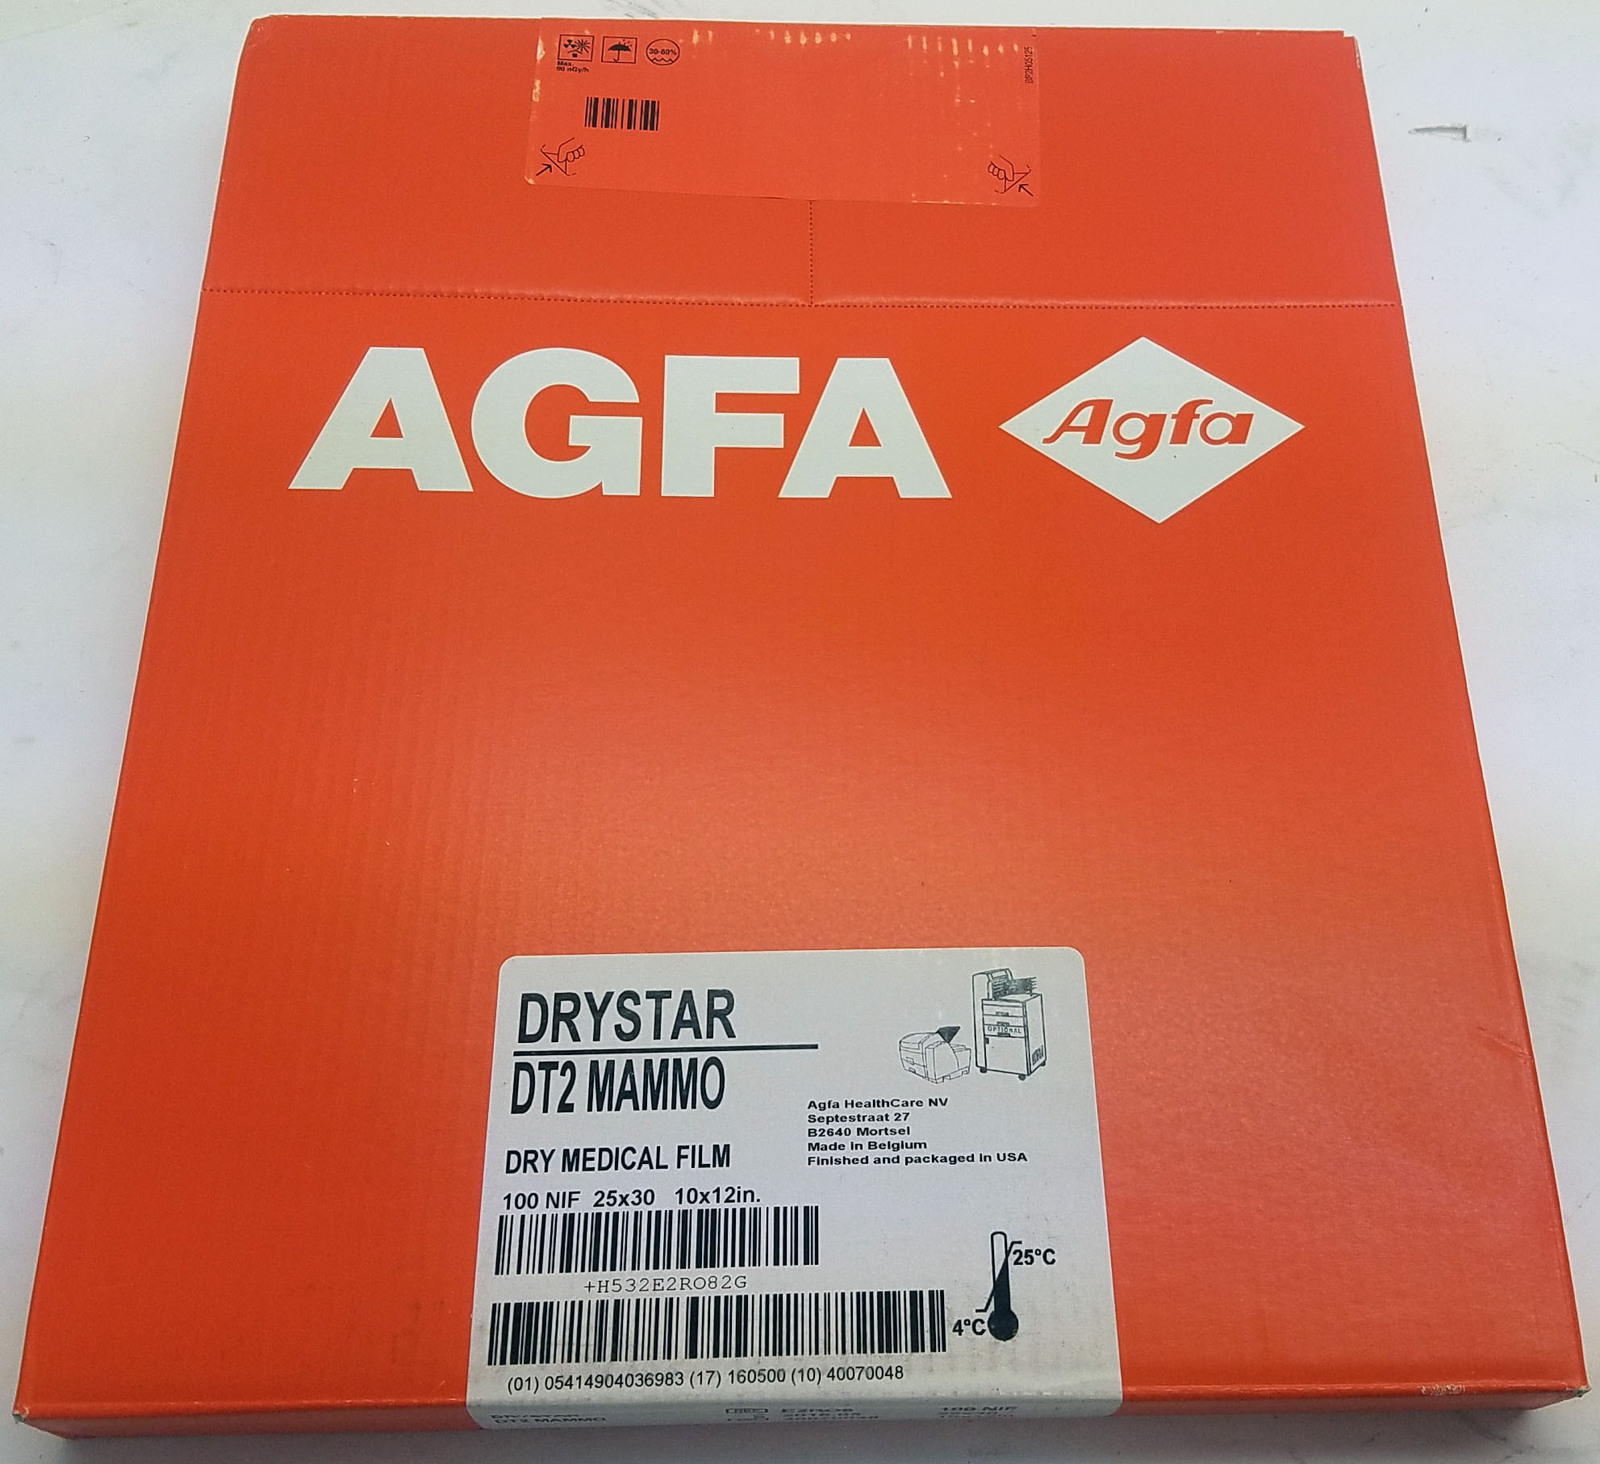 AGFA Drystar DT2 Mammo: 100 Sheet Dry Medical Film (10x12)